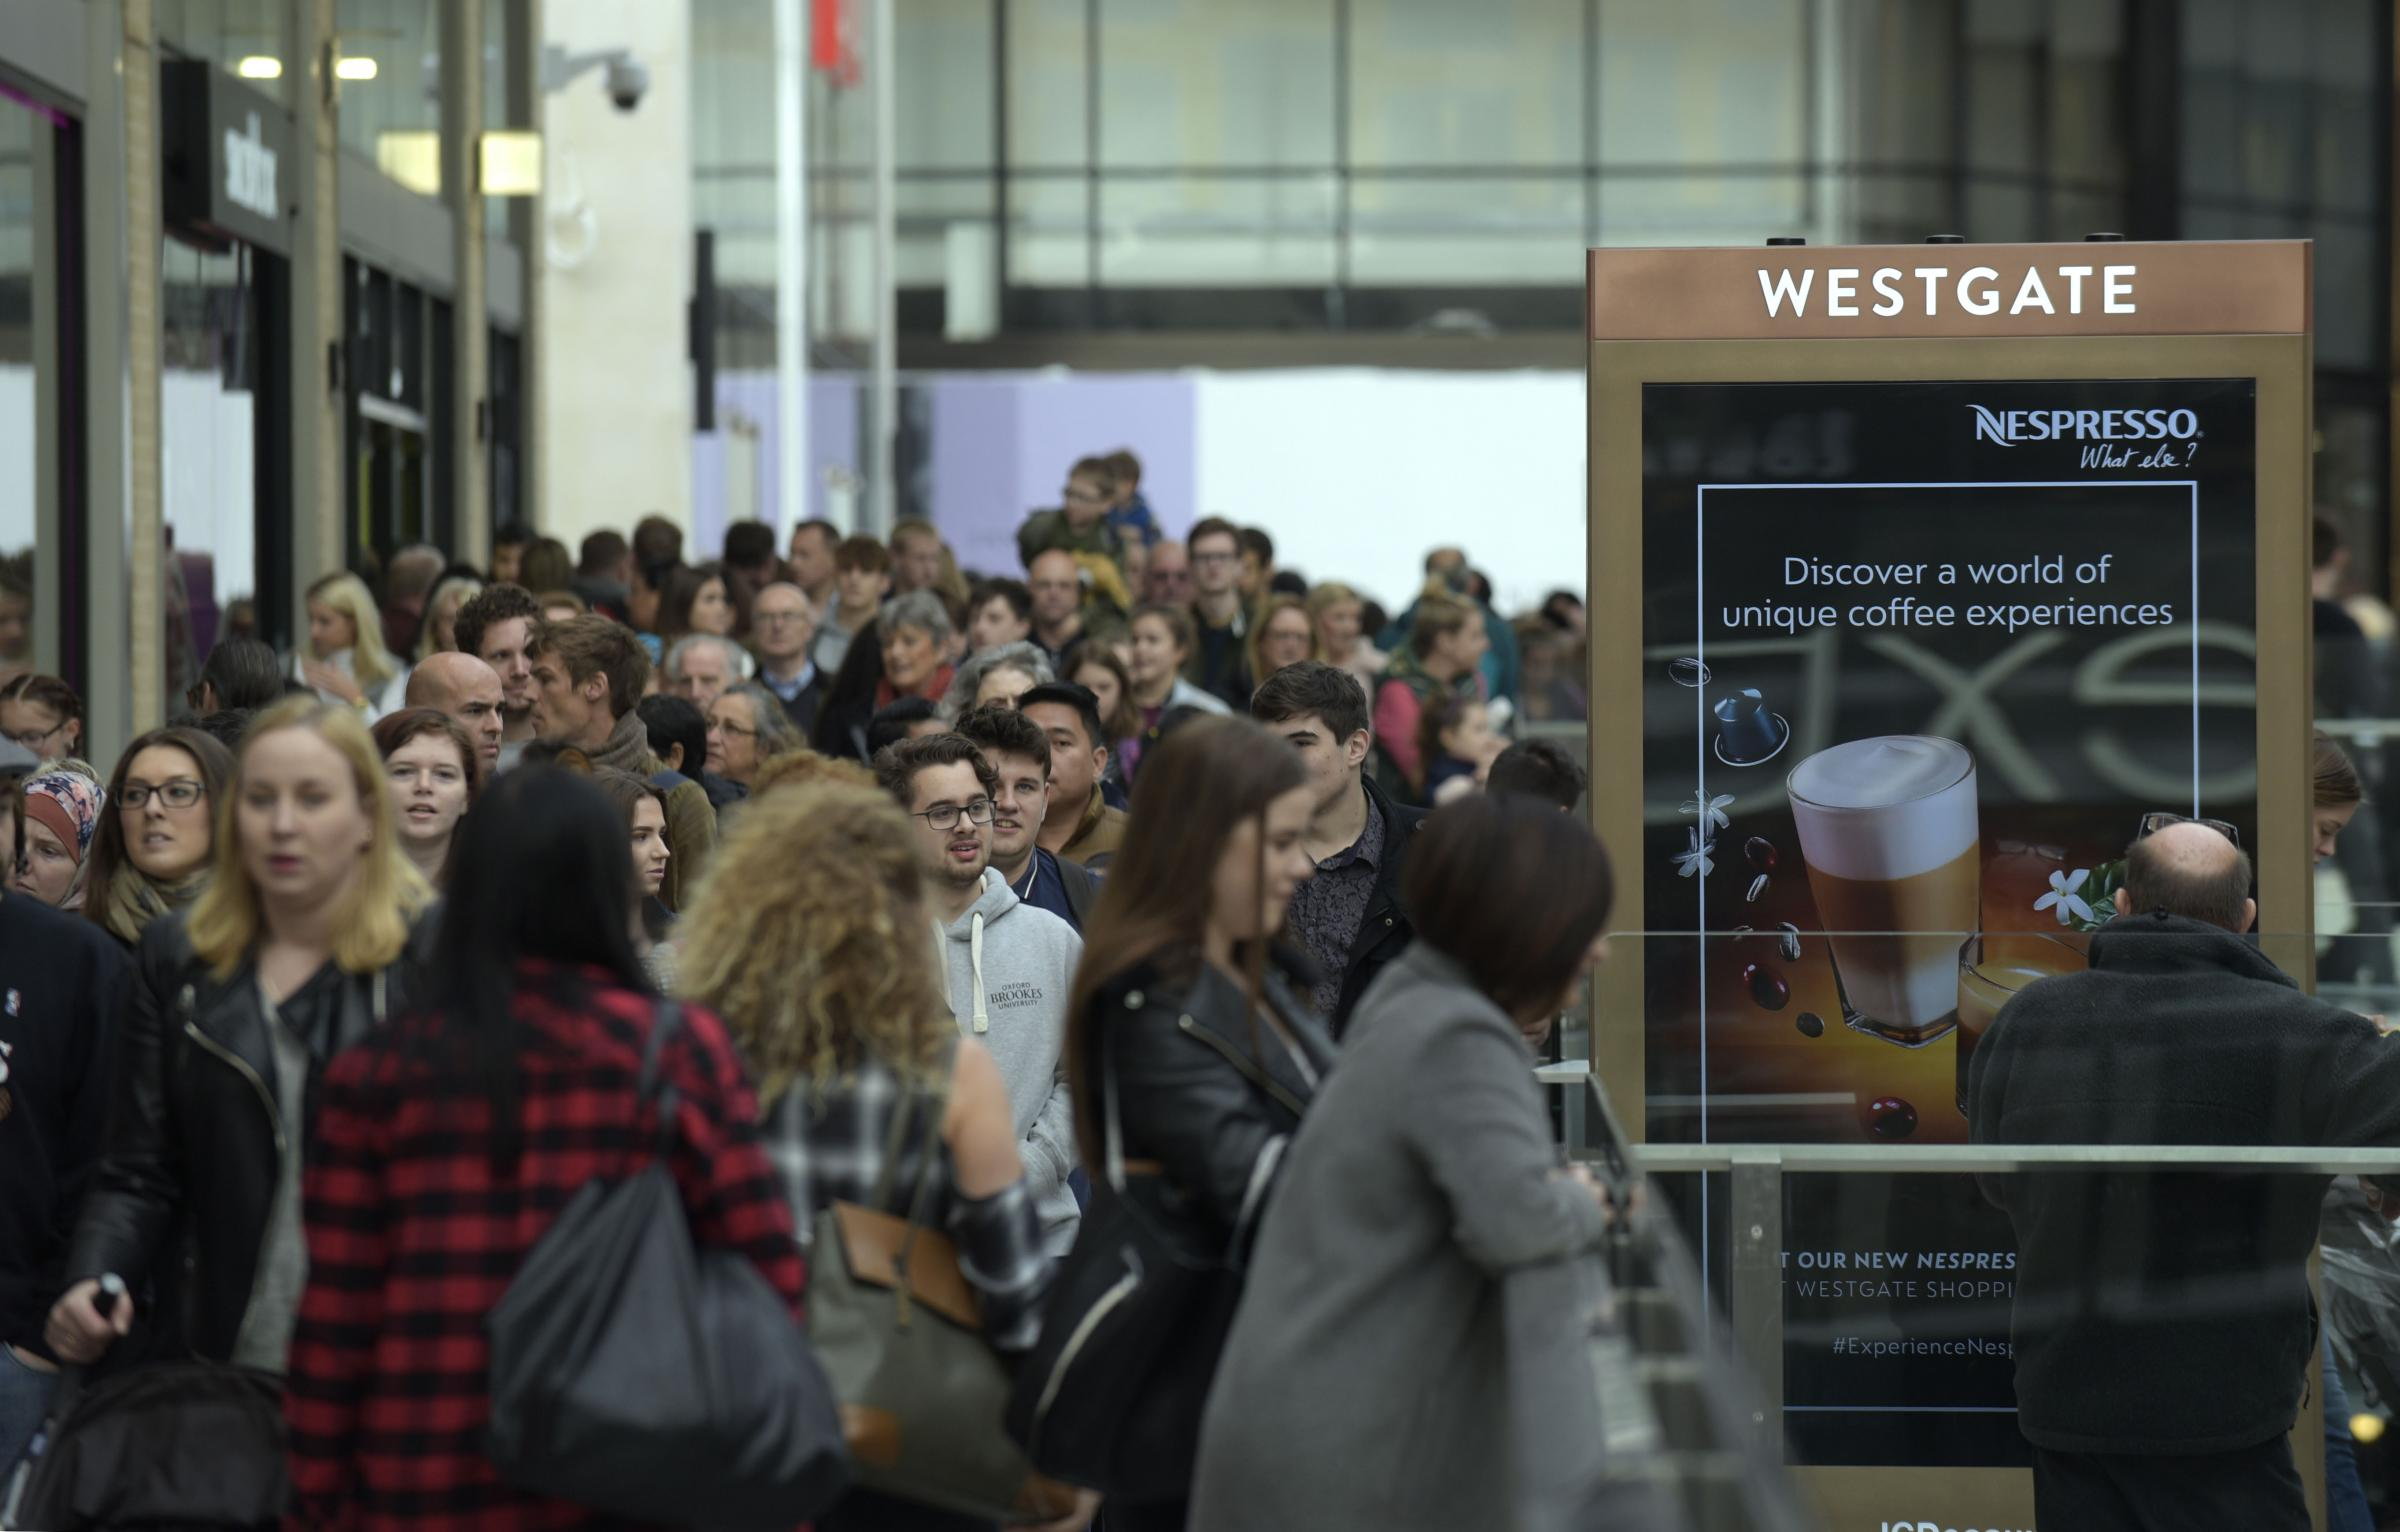 Thousands of shoppers pour into the new Westgate